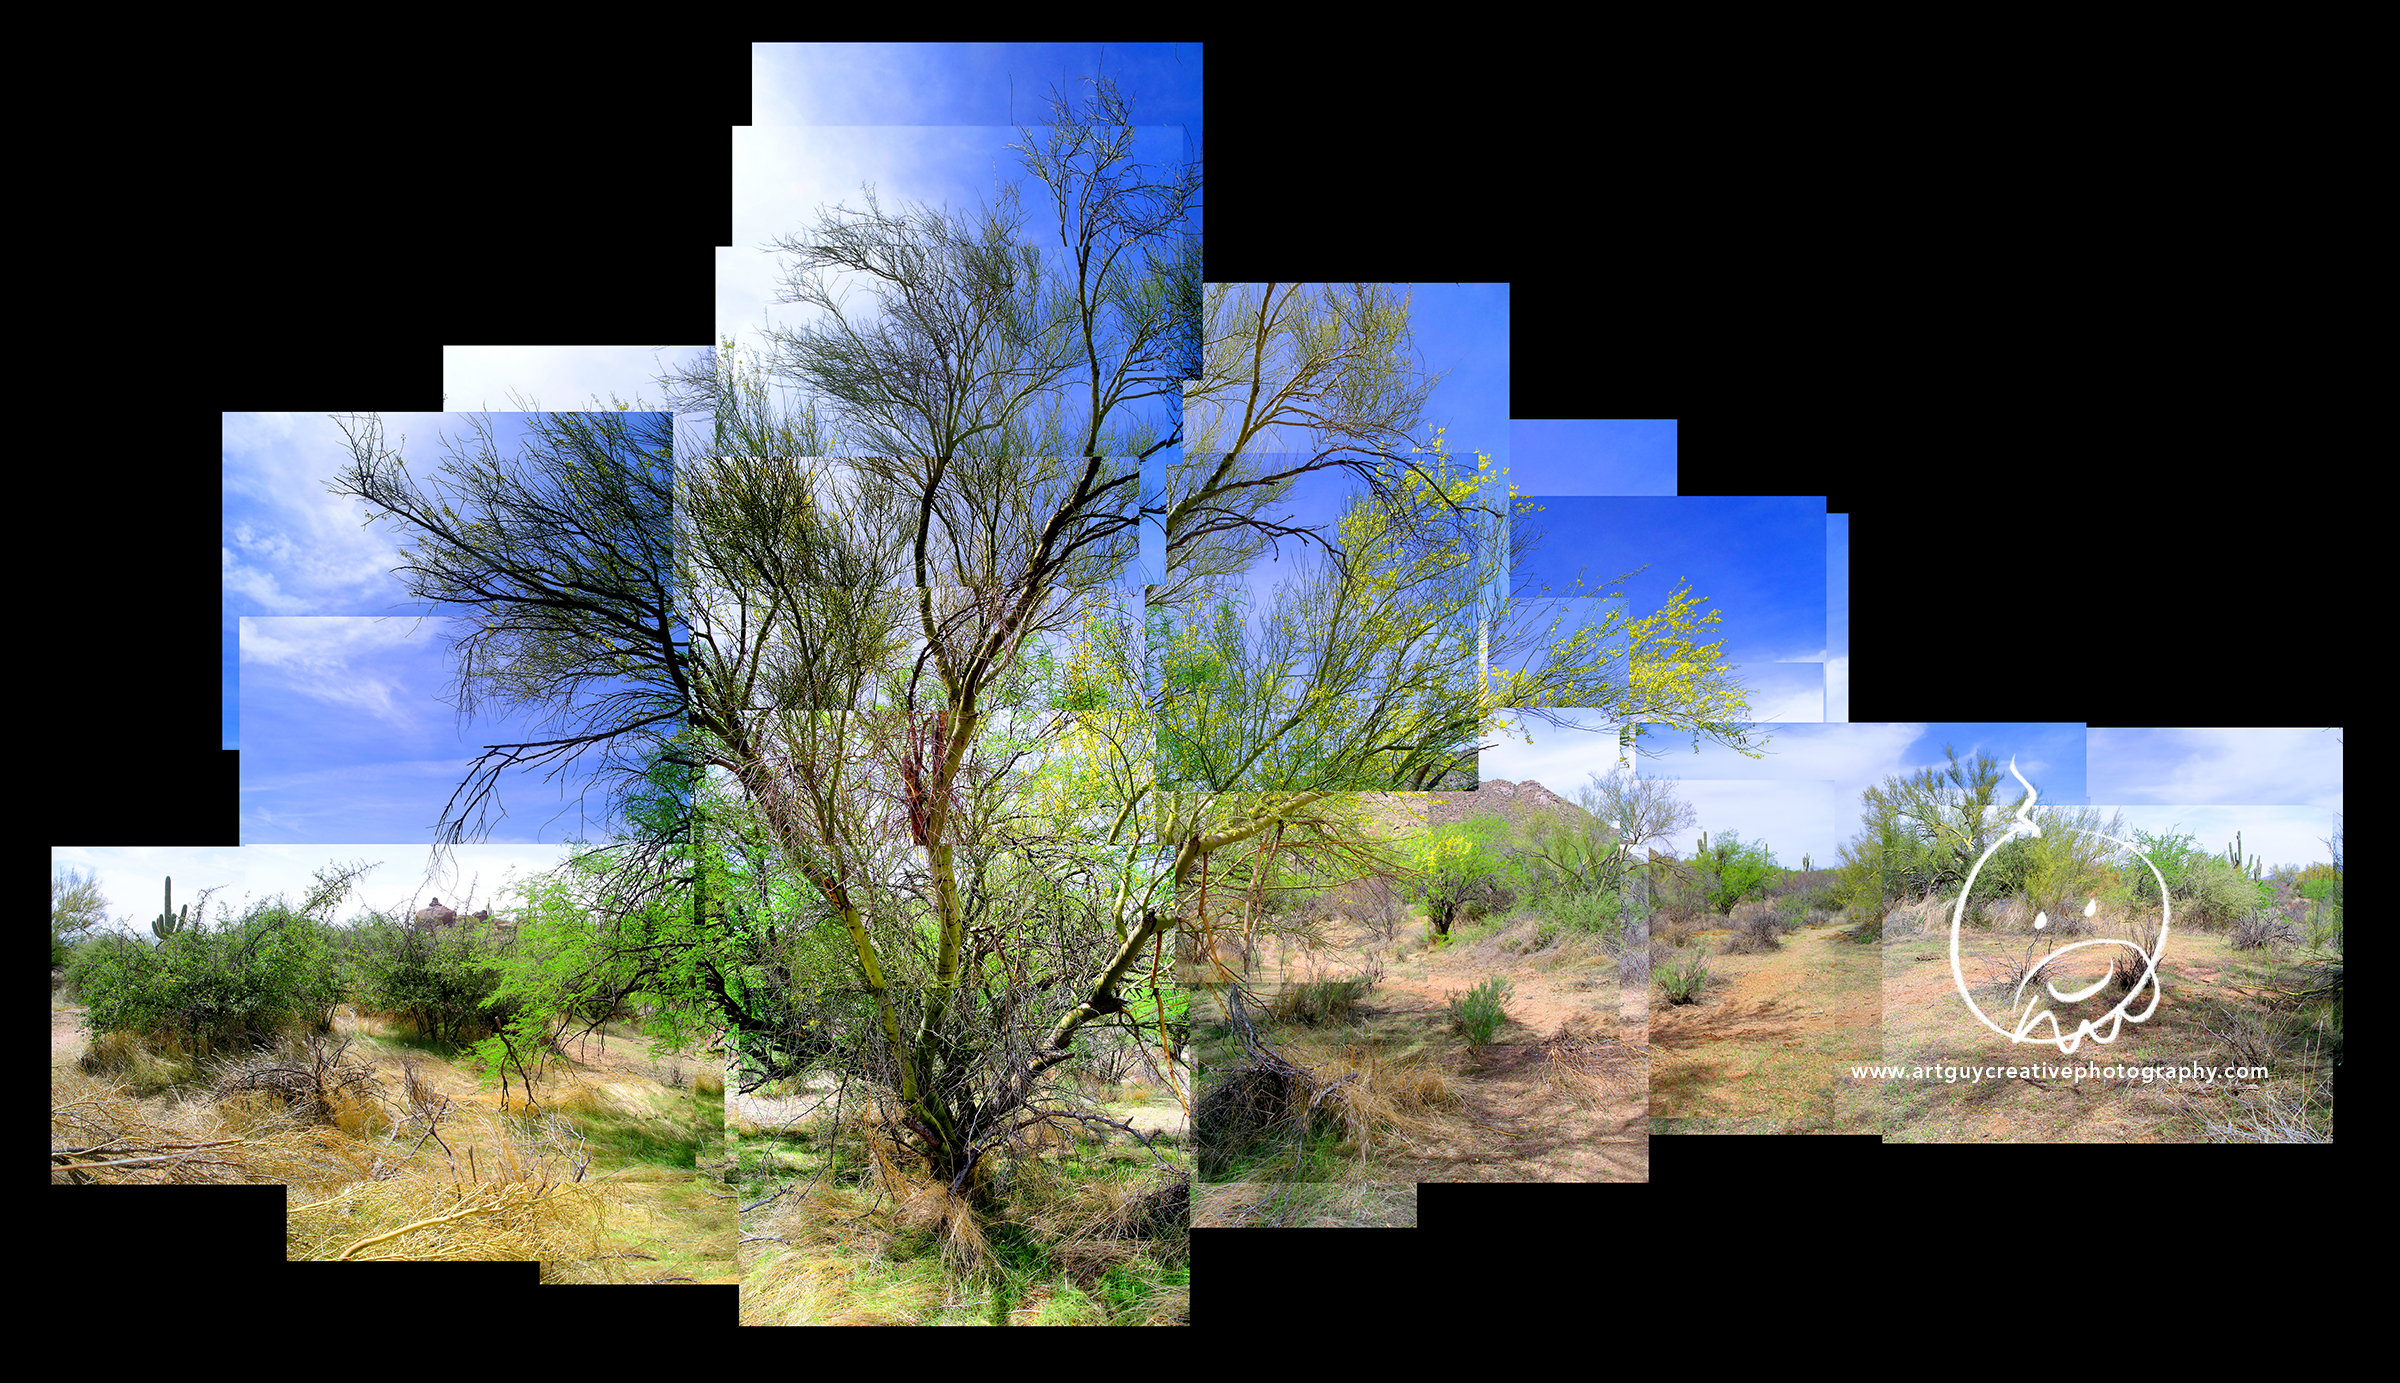 Arizona Desert Photography Two Trees